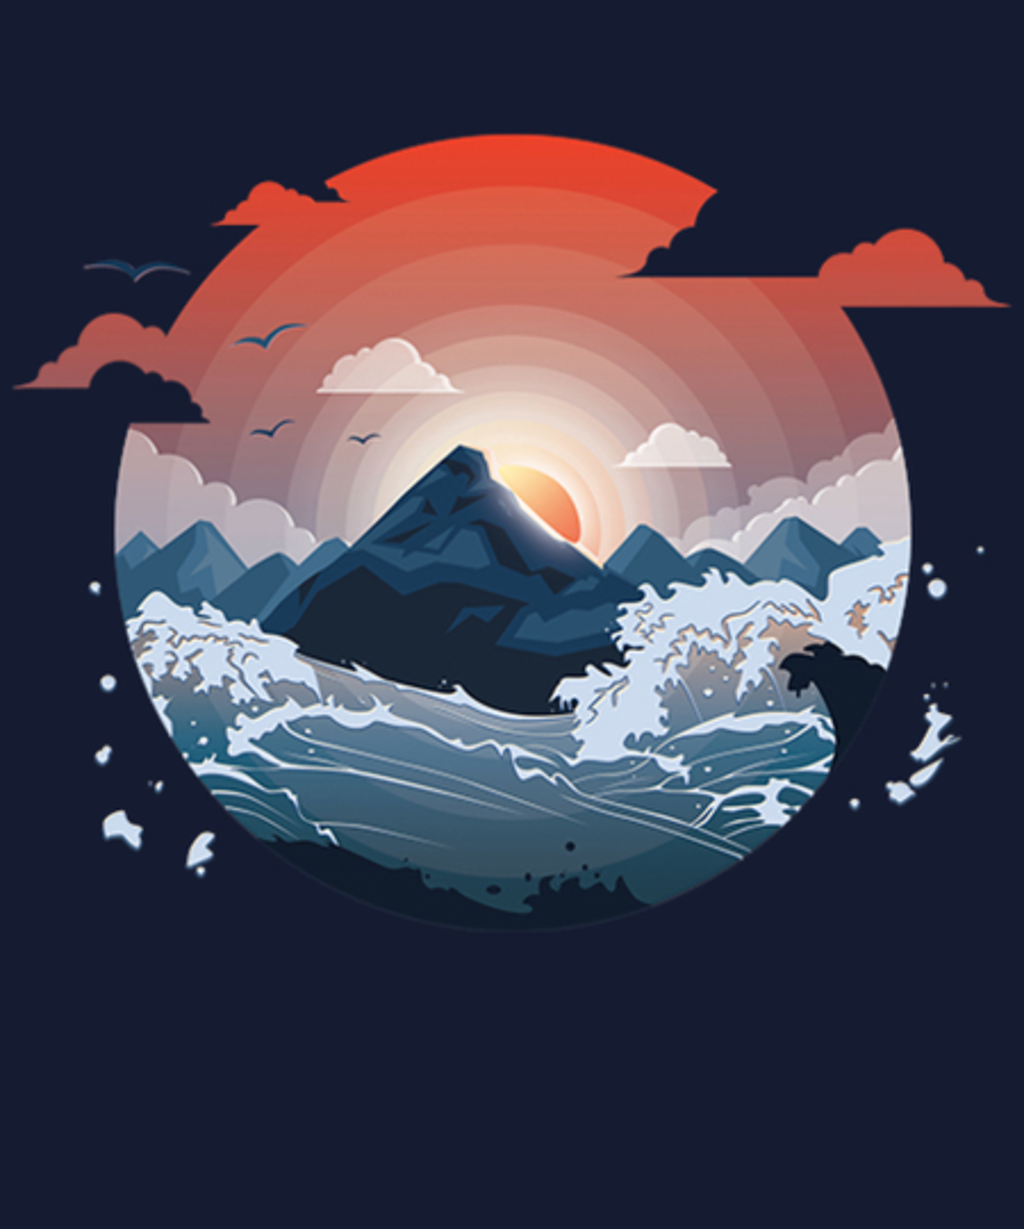 Qwertee: Surrounded by storm